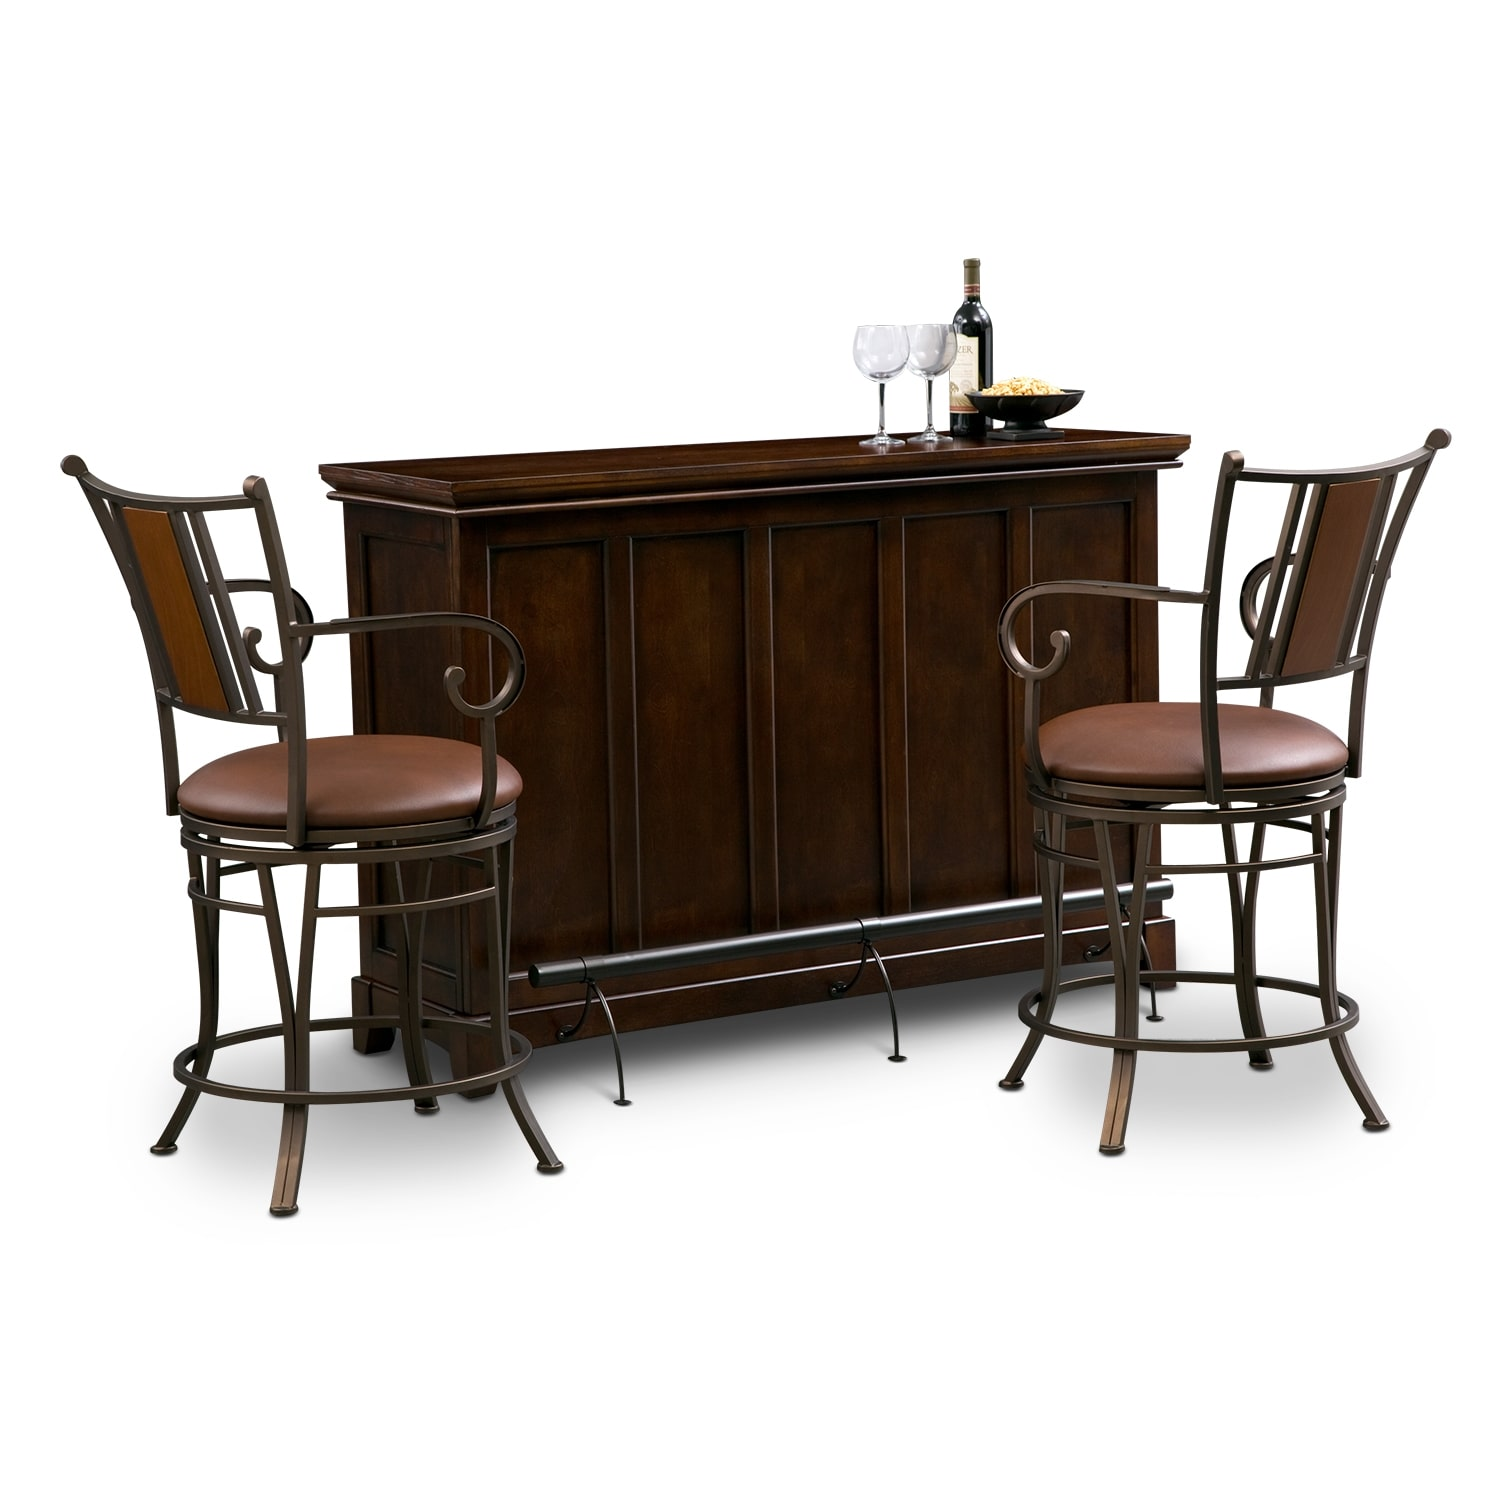 Value City Dining Room Tables Dining Room Furniture Carlton Camden Pc Bar Set Dining Room Pub